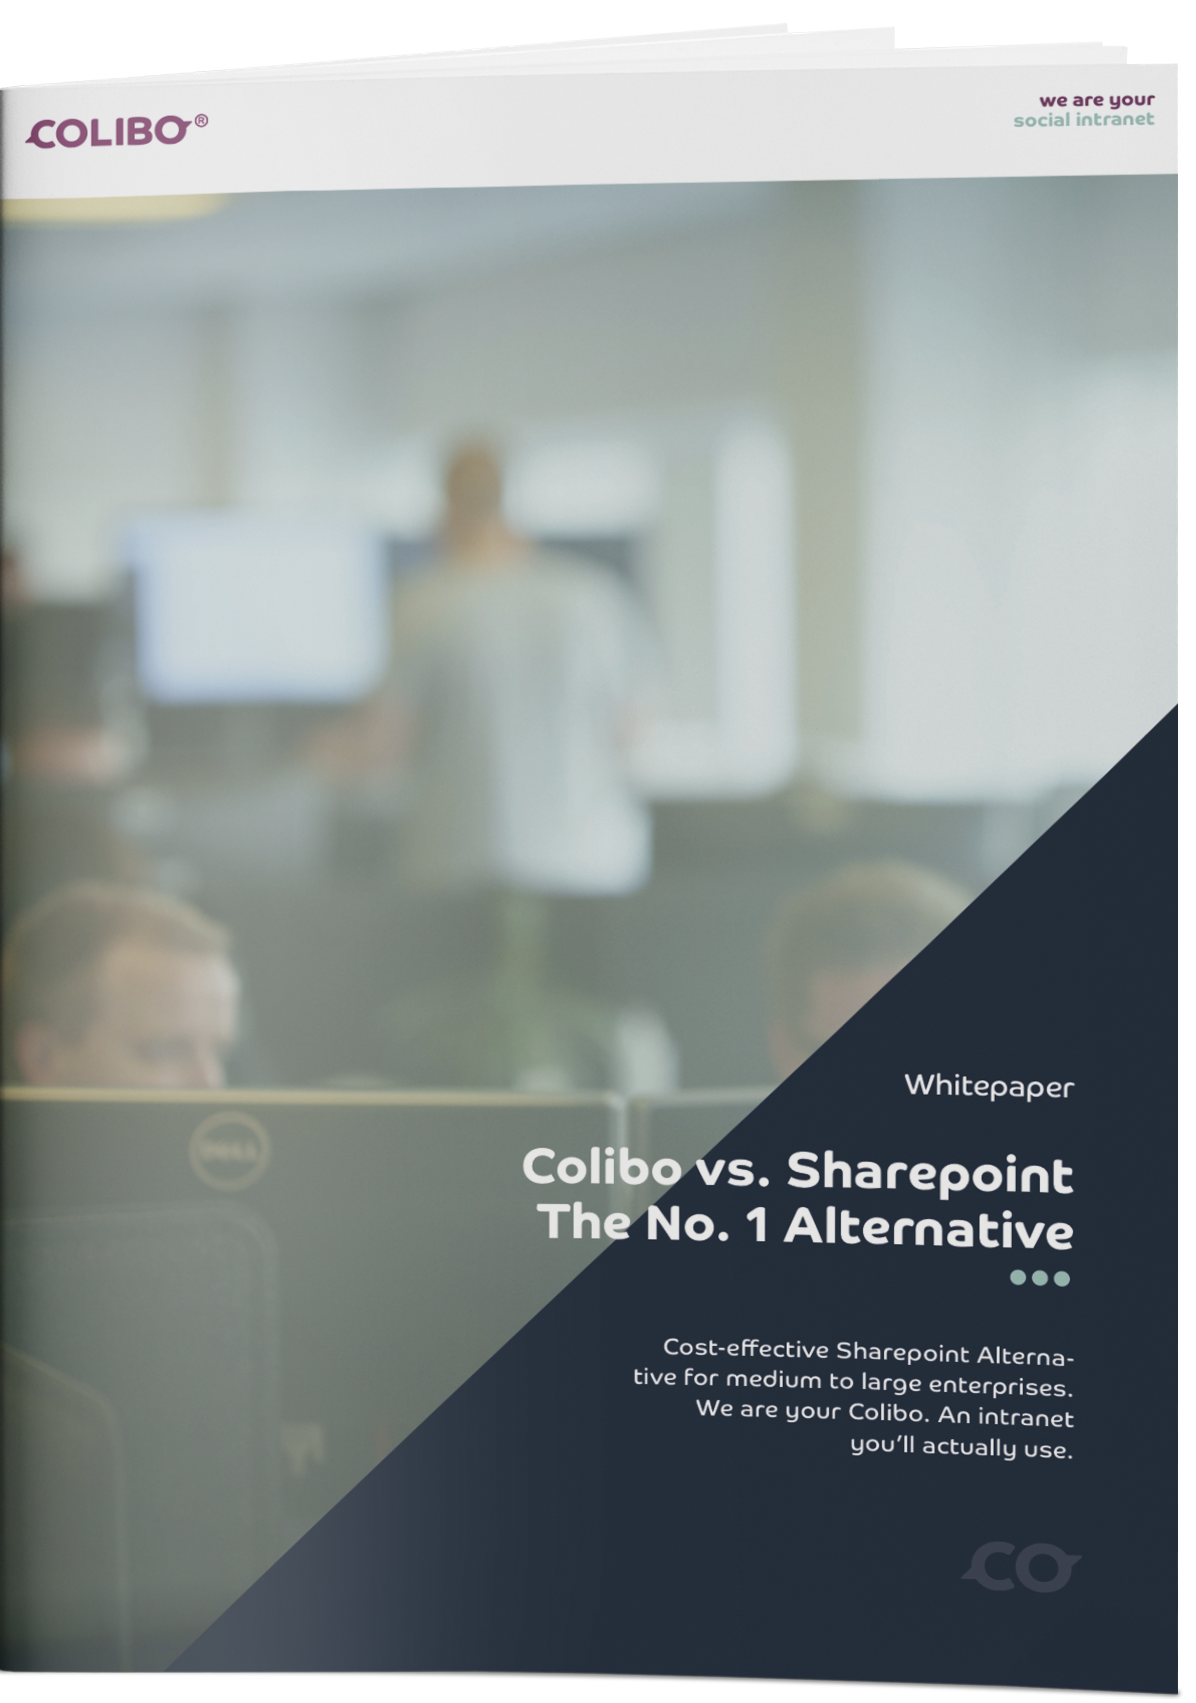 colibo_sharepoint_whitepaper_1.png